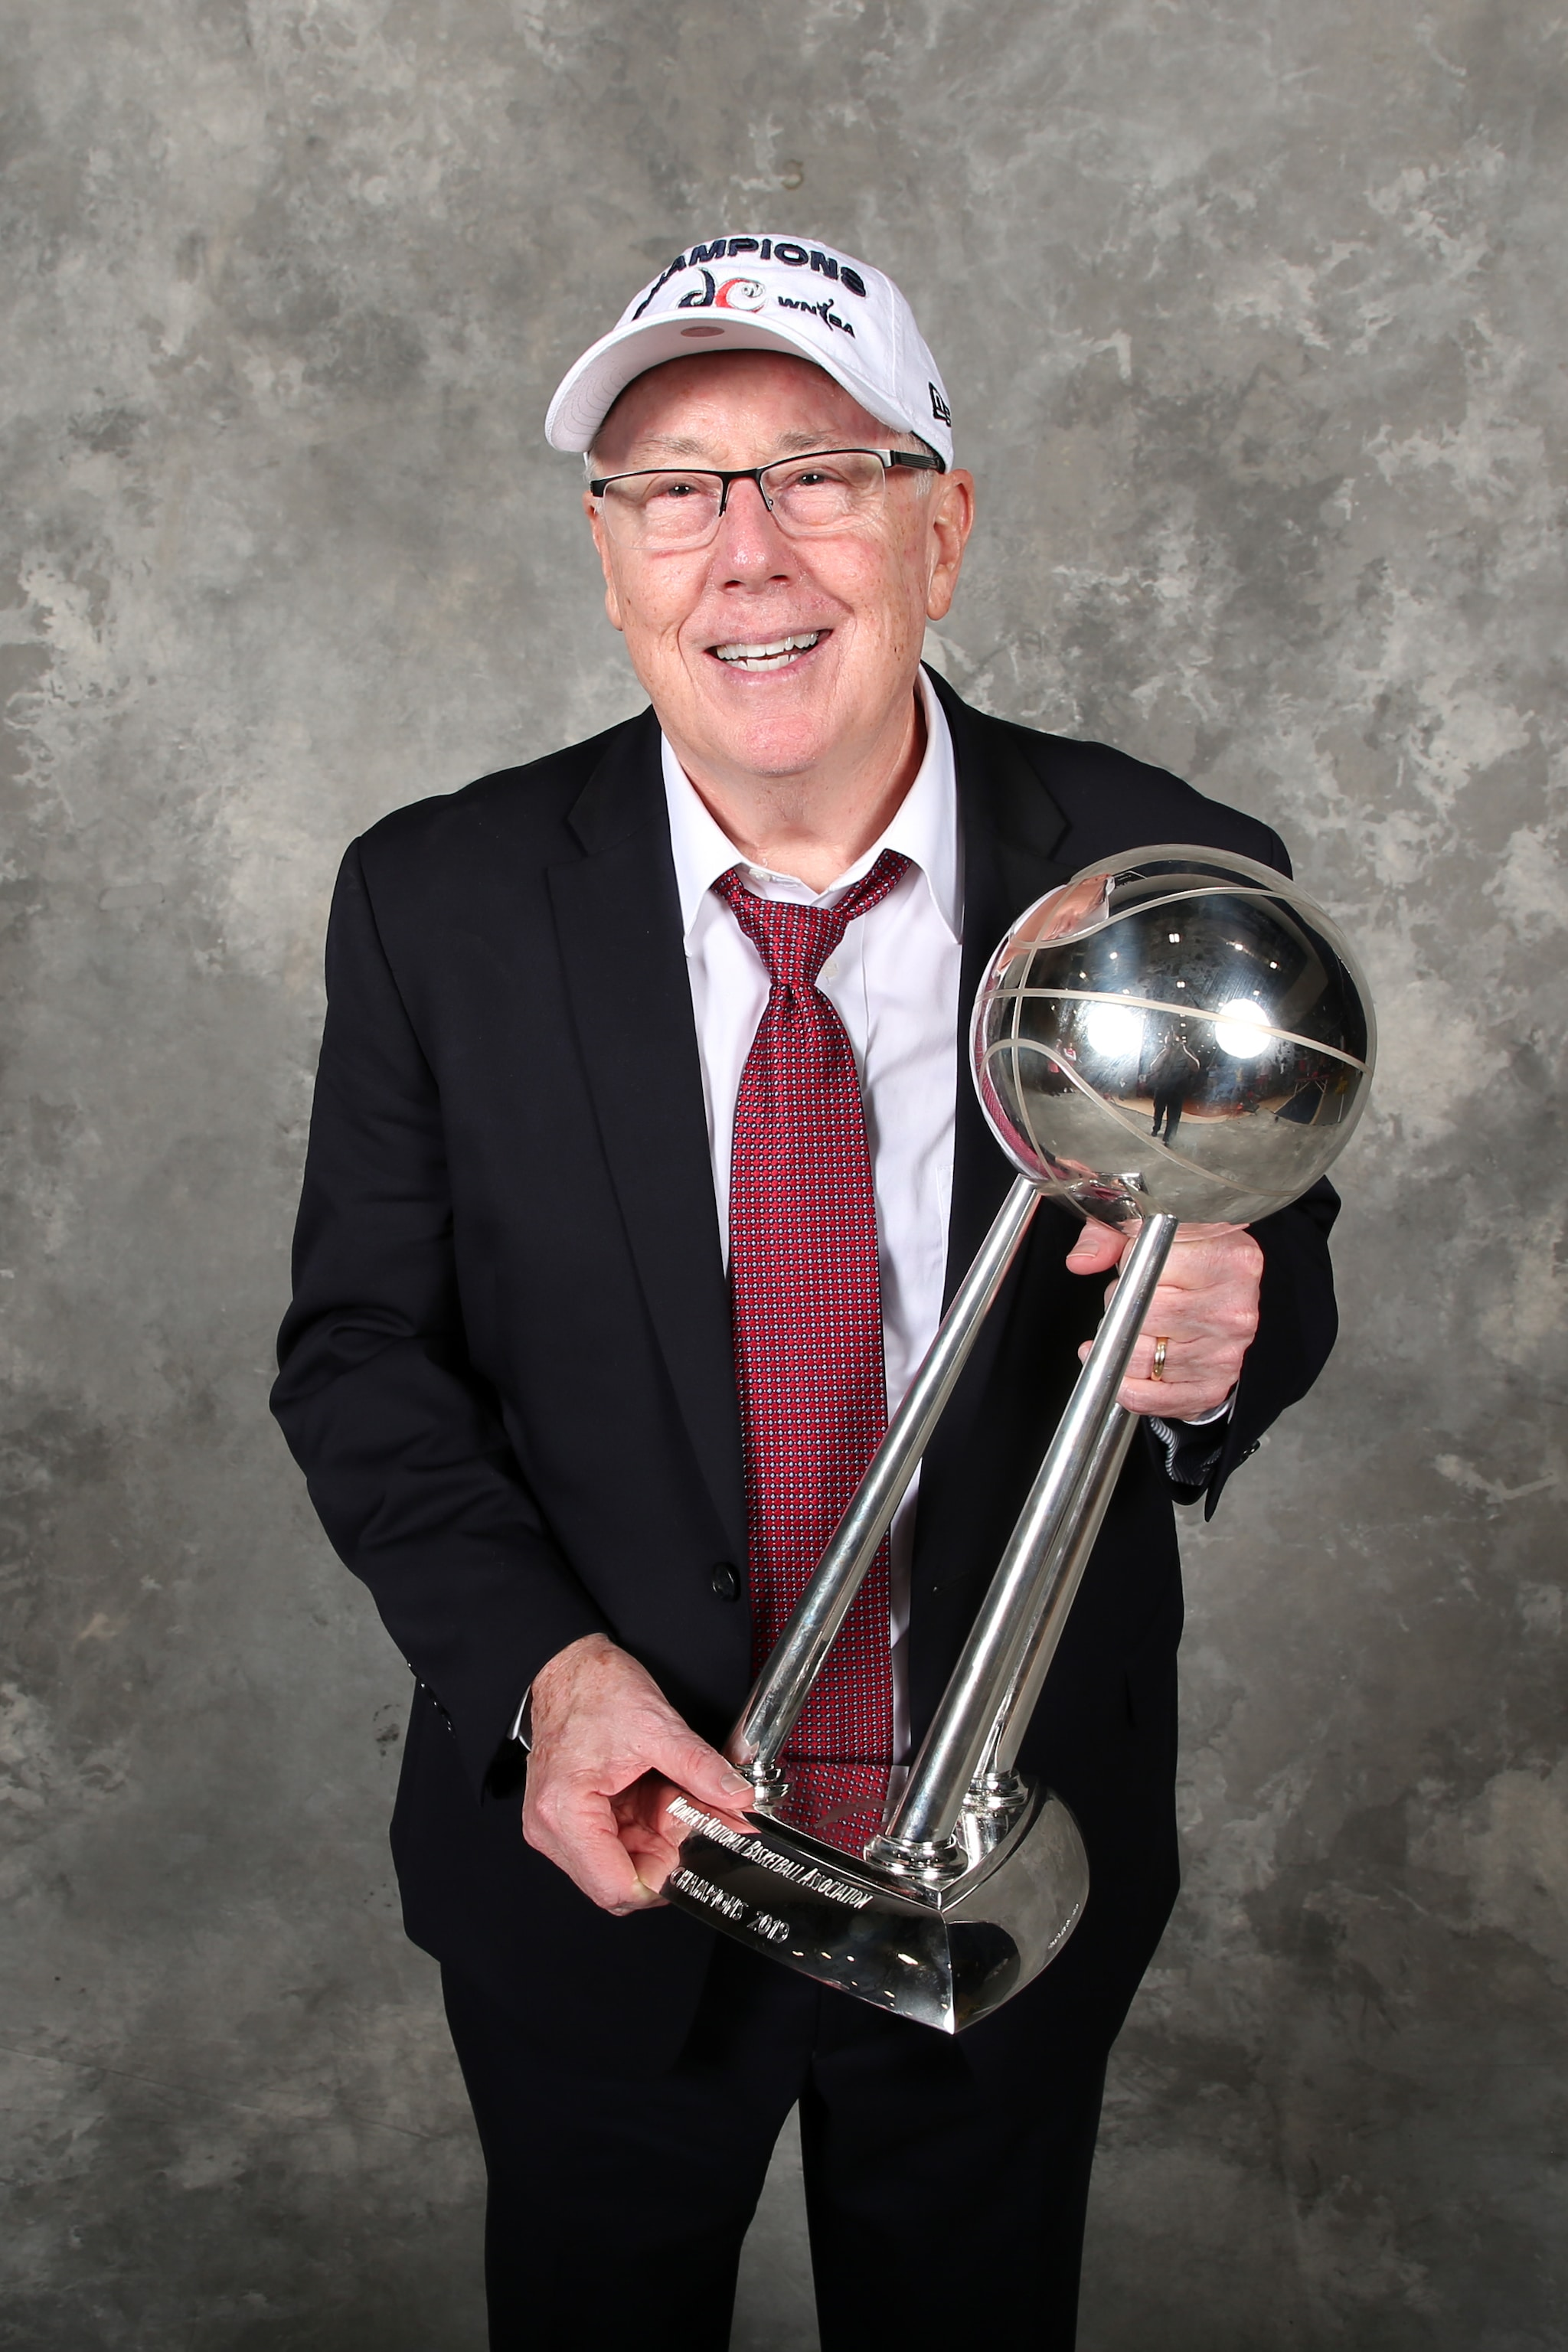 The winningest coach in WNBA history, Mike Thibault, poses with the WNBA Finals trophy.